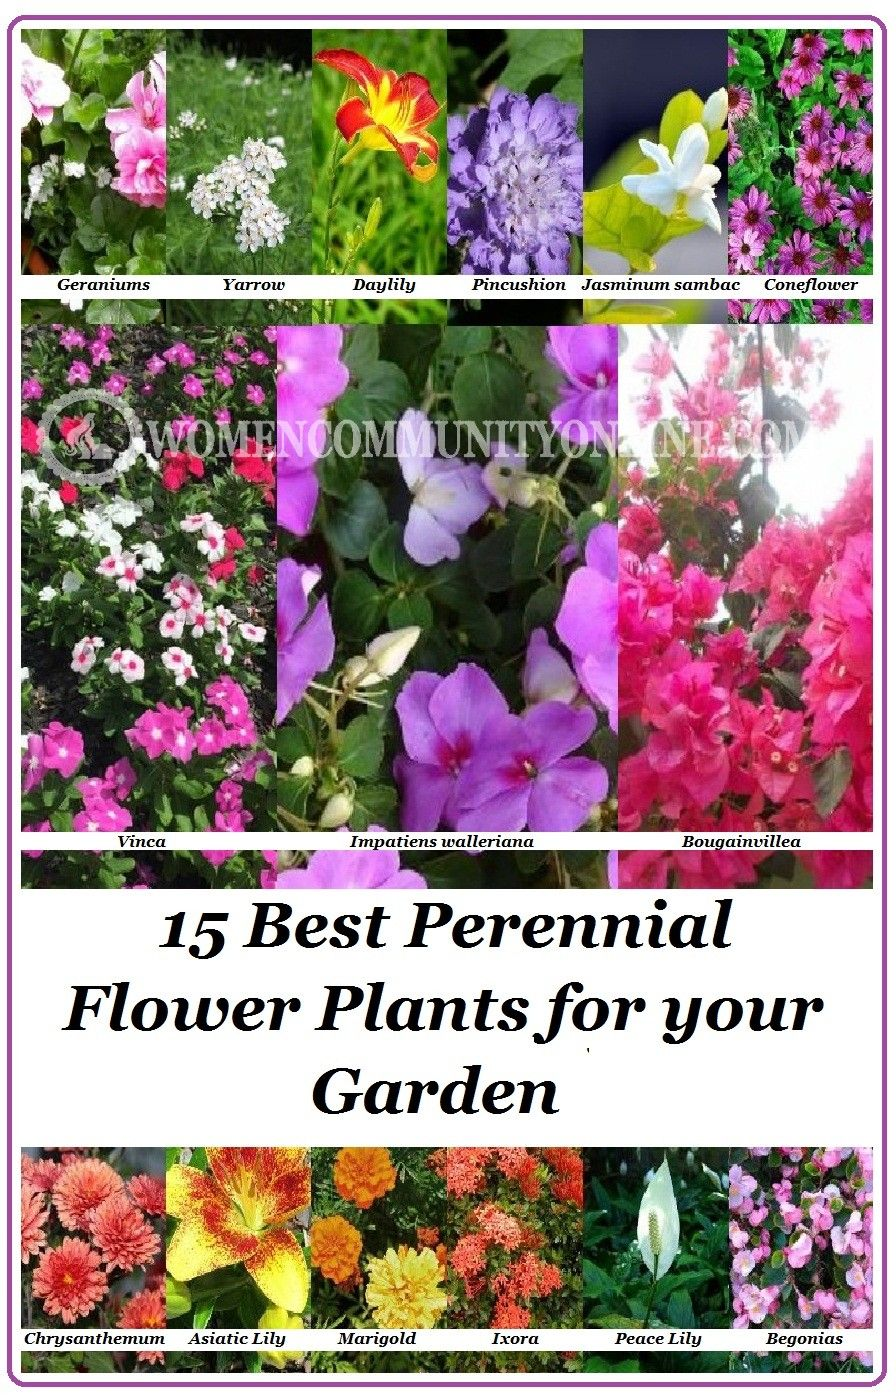 15 Best Perennial Flower Plants for your Garden is part of Perennial garden Layout - Today I'm listing here 15 best perennial flower plants that you can have for your garden  Perennials are those flowering plants